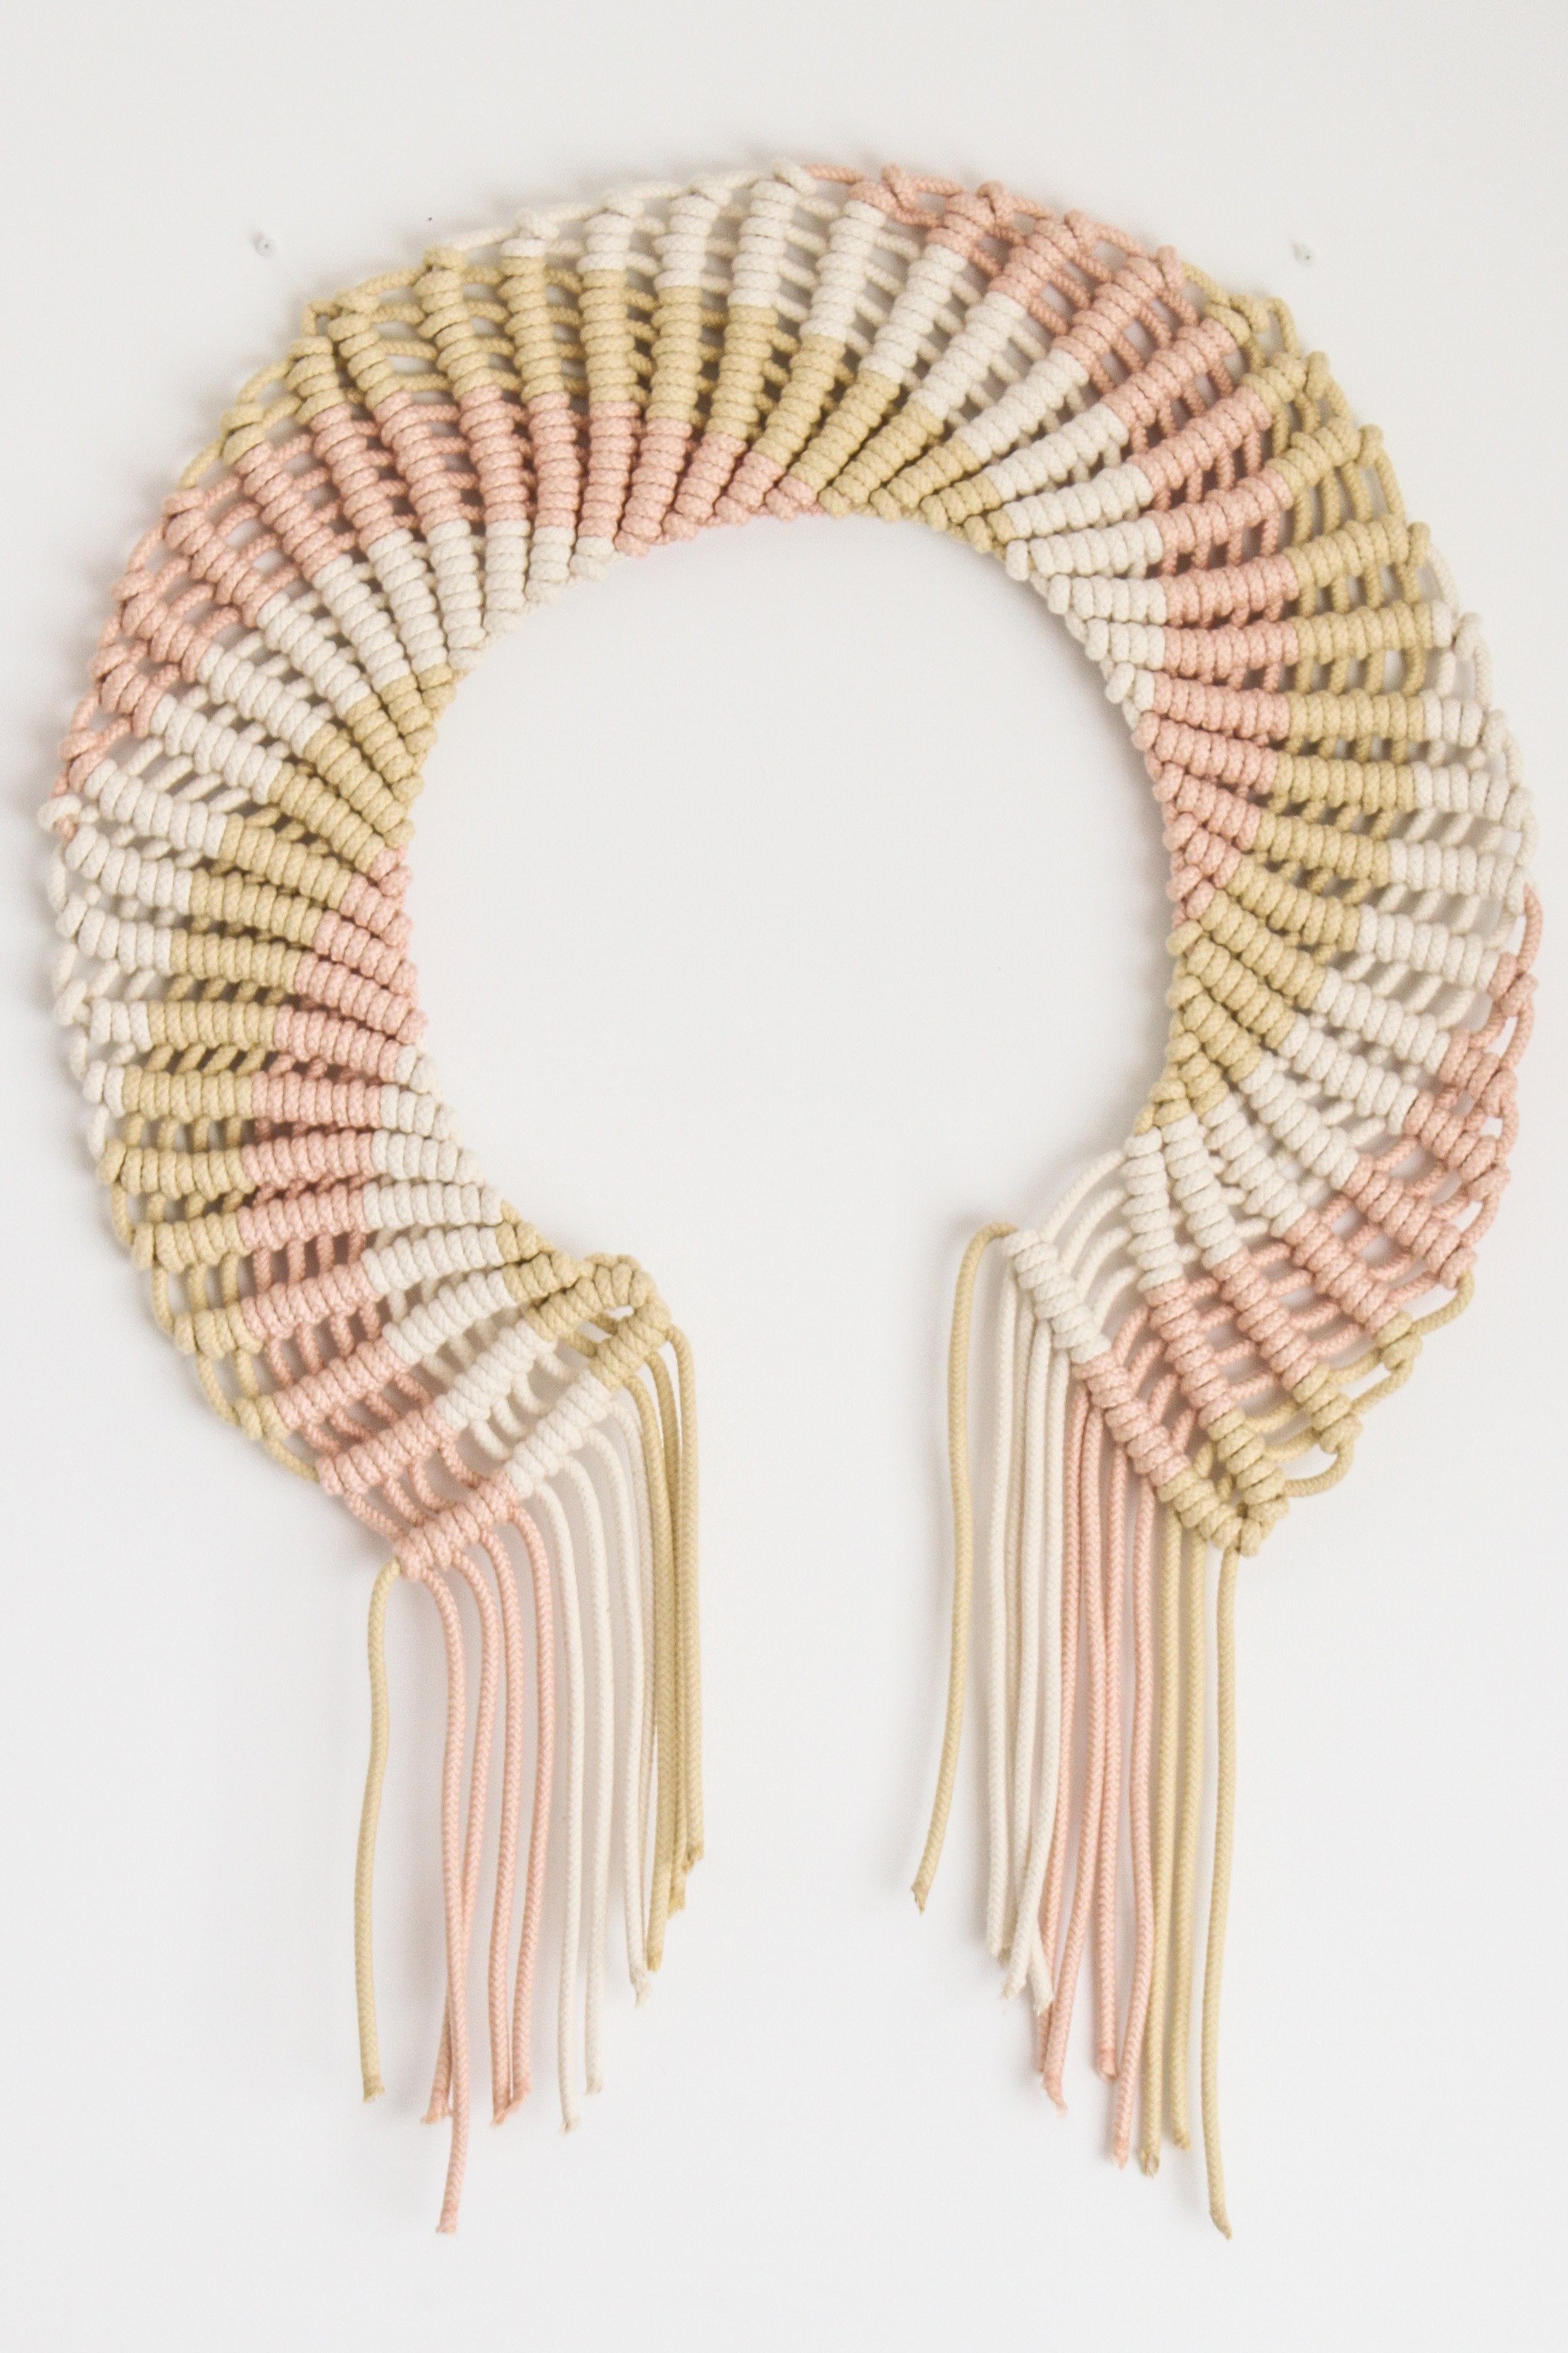 8mm Light Pink Macramé Rope